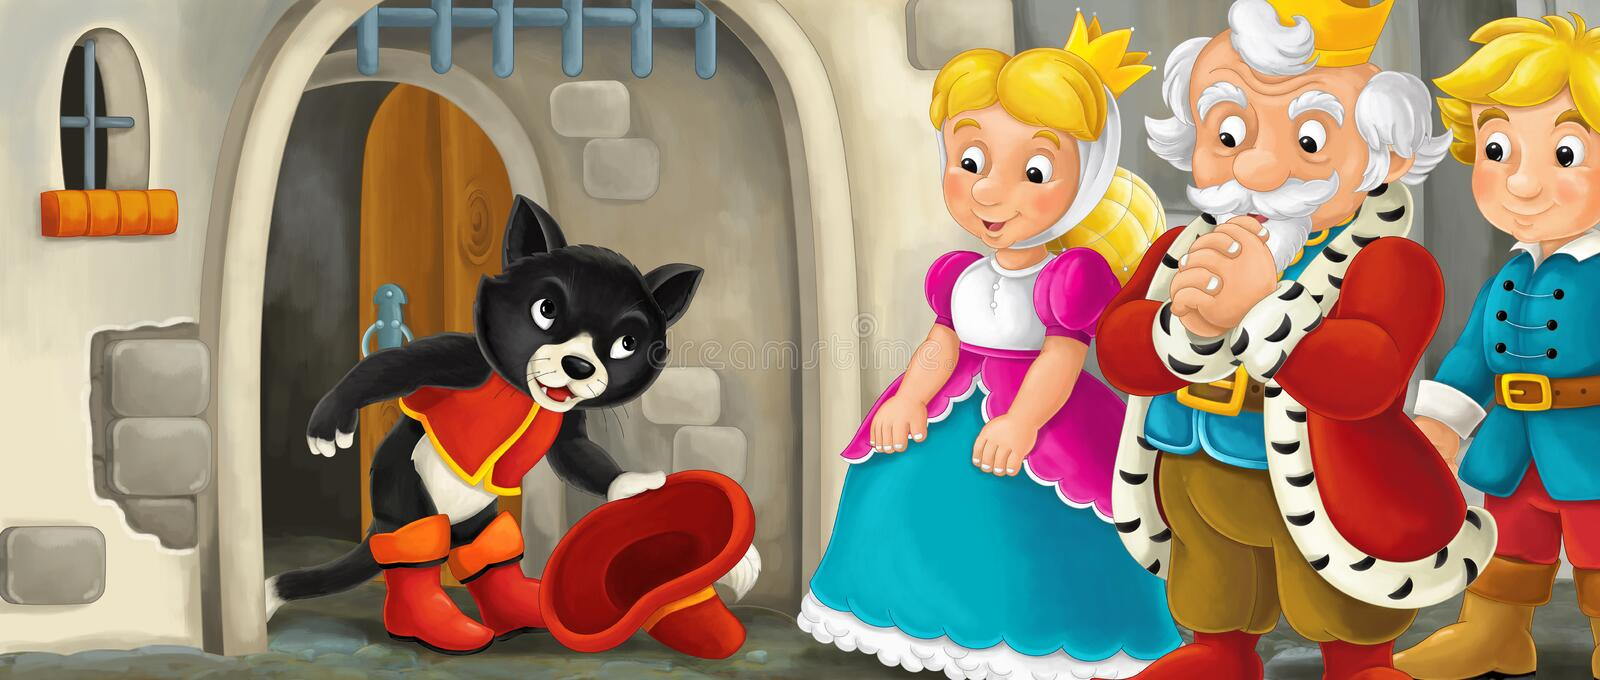 Cartoon scene with cat greeting royal pair by the castle royalty free illustration